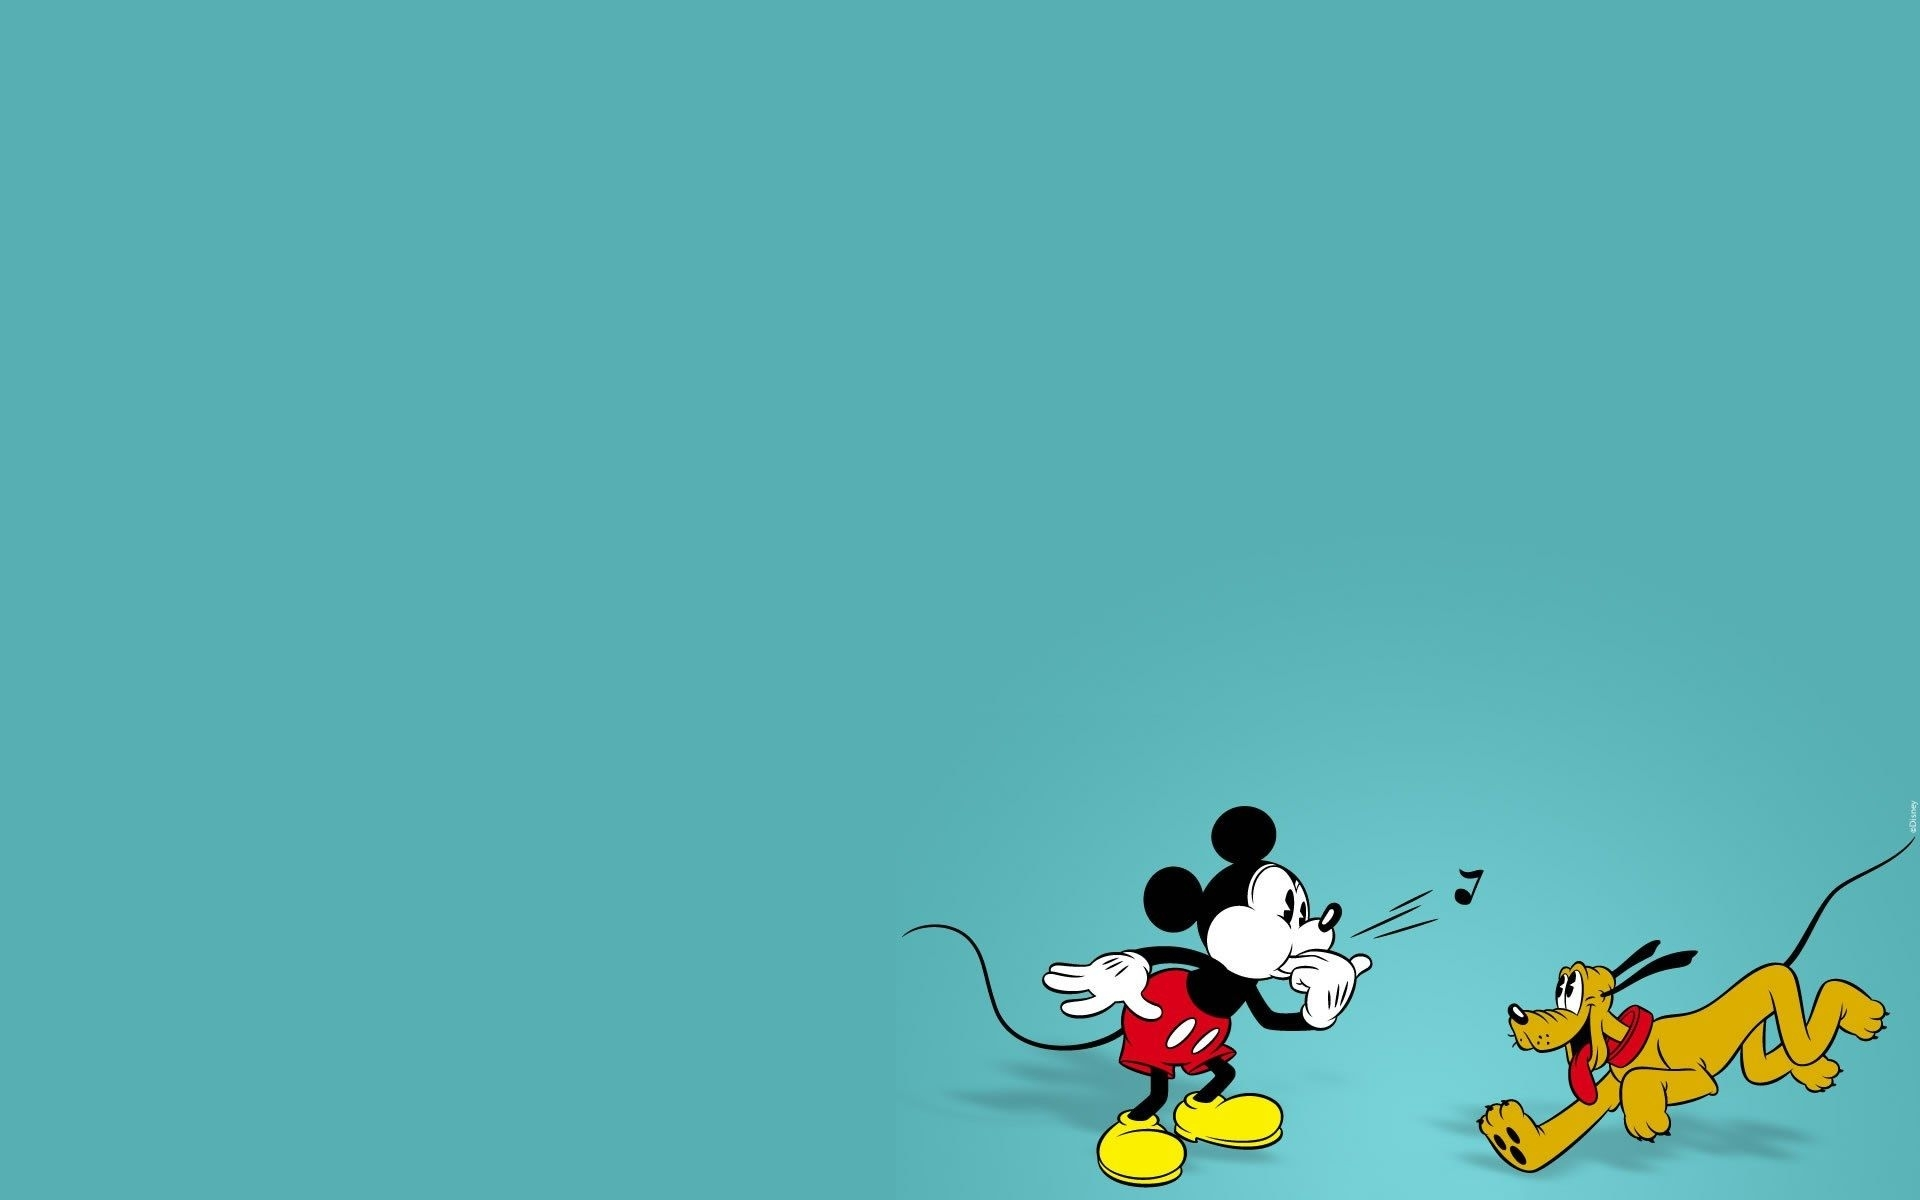 mickey mouse cartoons hd wallpapers download hd walls 1280×800